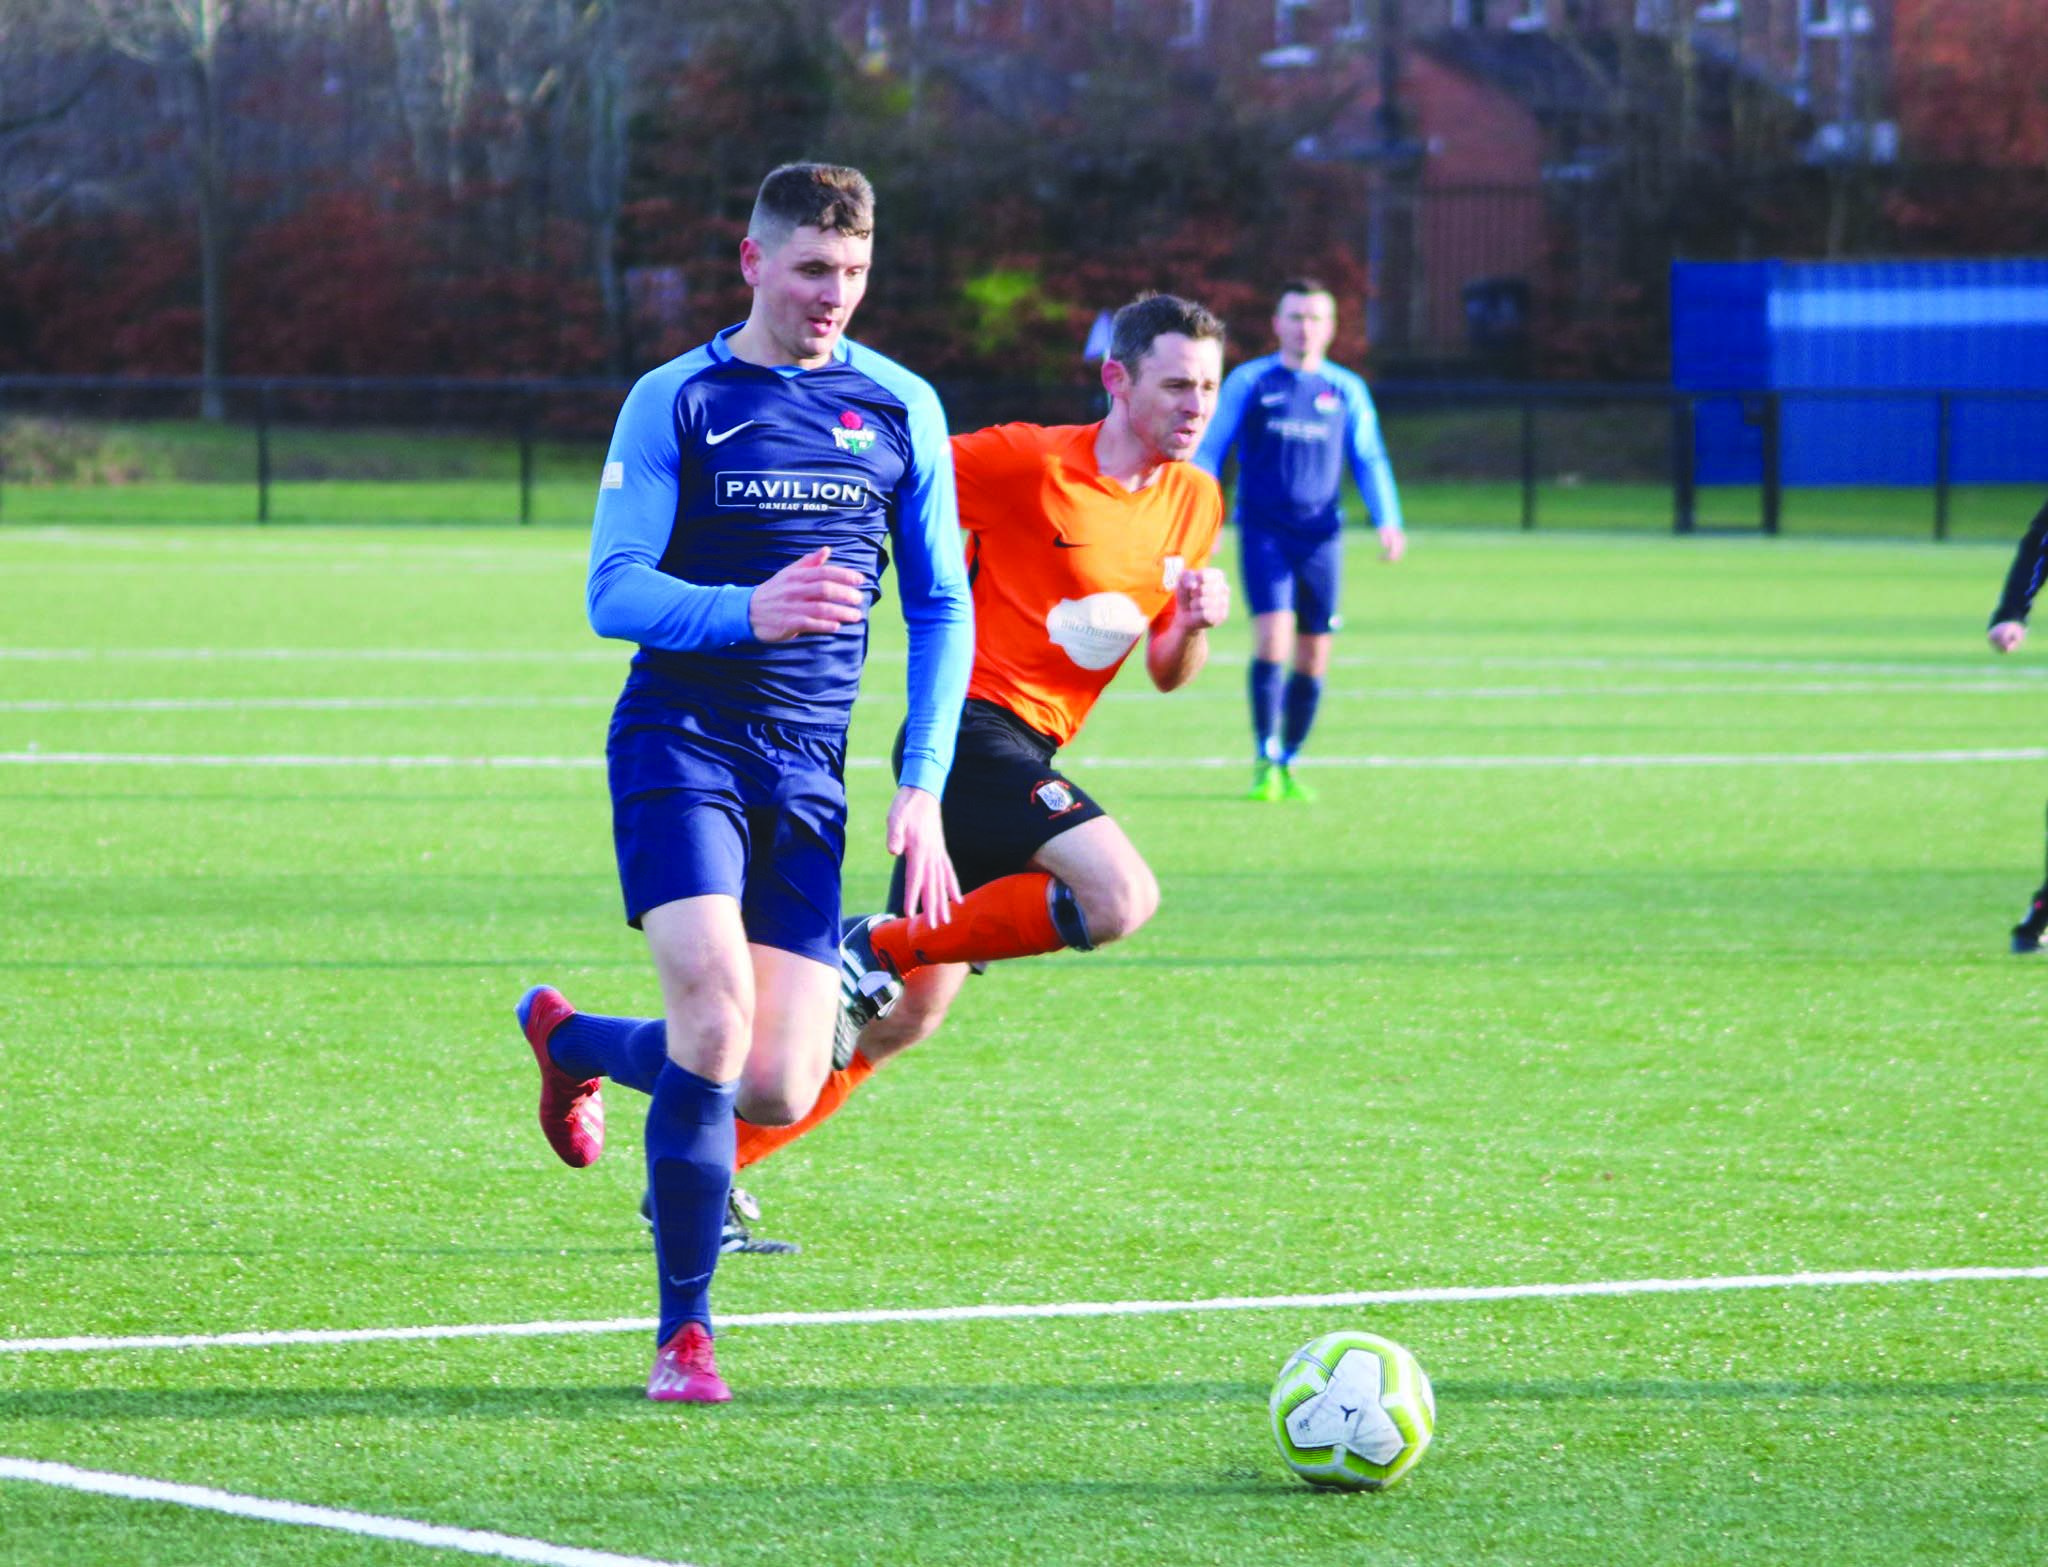 Aquinas were due to play in a condensed Division 1A, Section B, but manager Barry Baggley is happy for his team to return in August when it is hoped the competitions can be played as normal